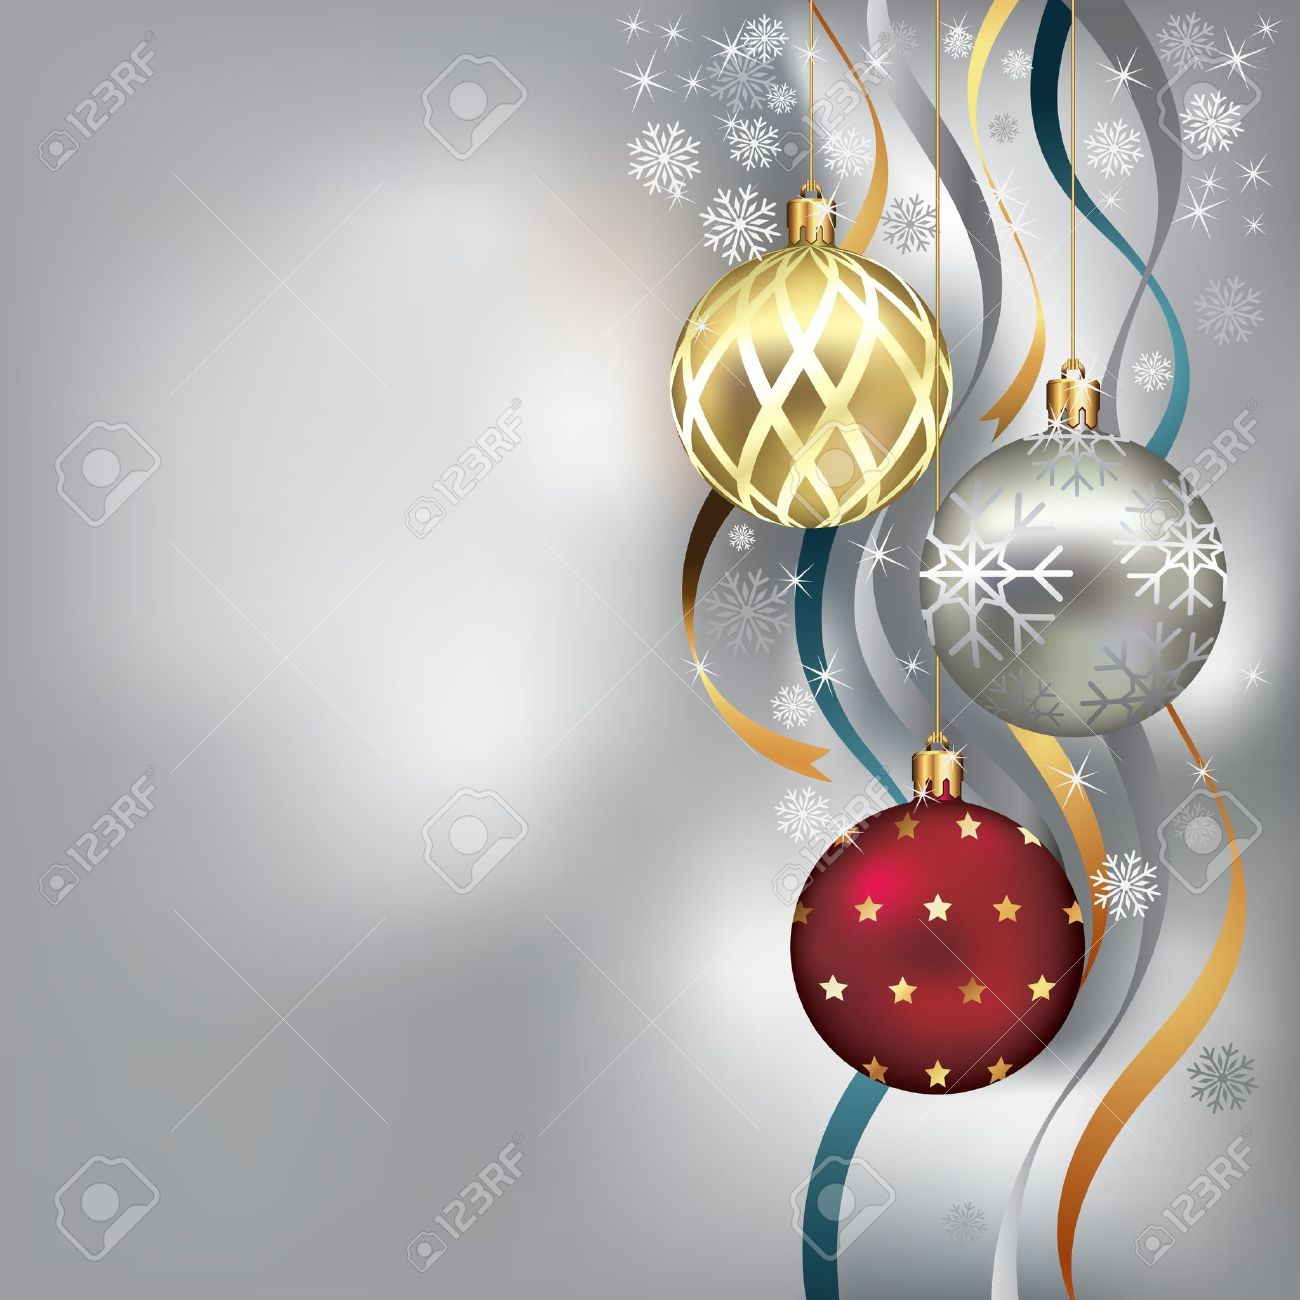 Christmas background with baubles and ribbon in snow Stock Vector - 11375641